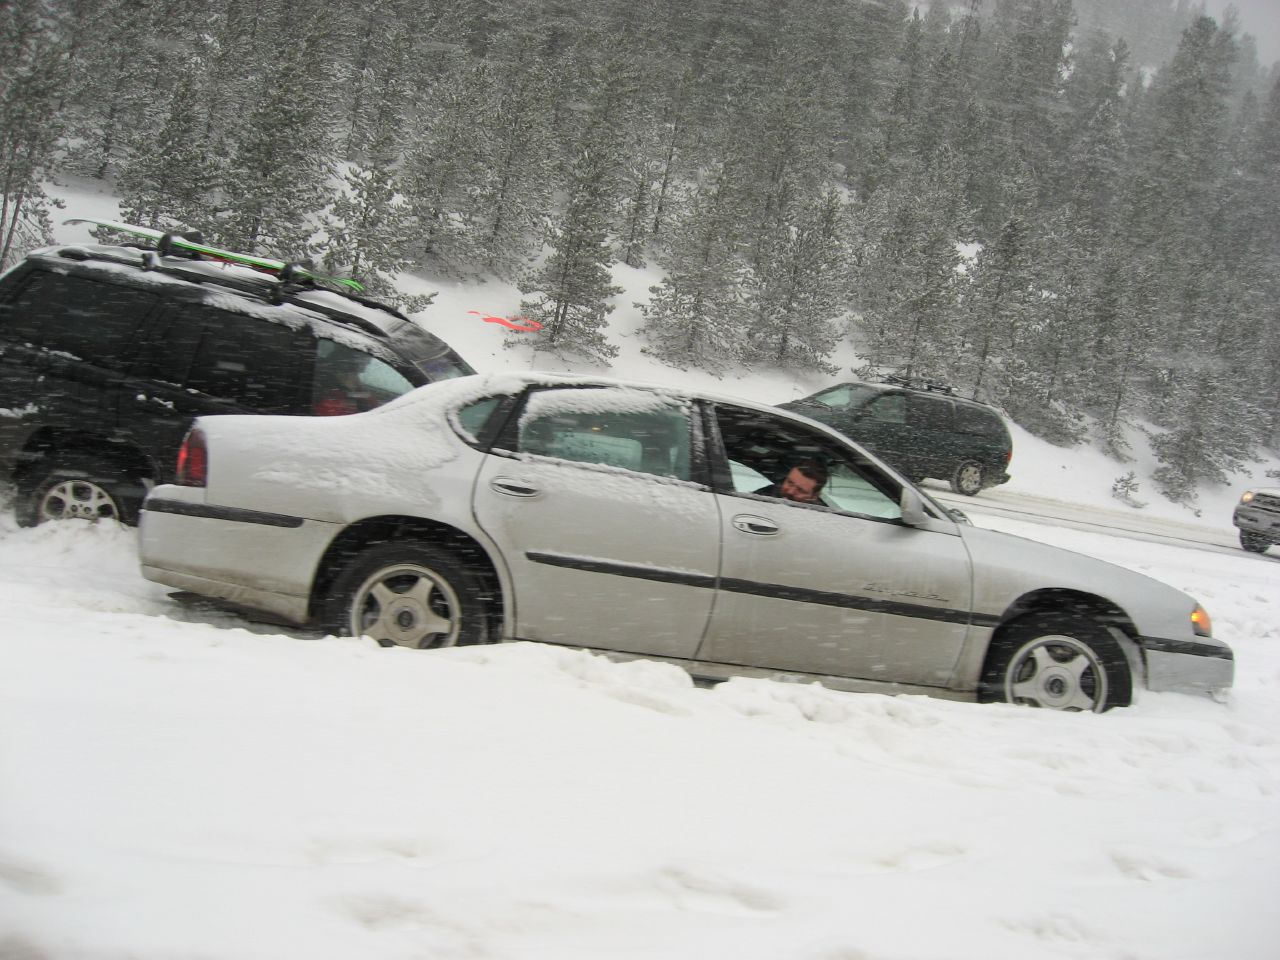 How To Survive A Blizzard If Your Car Gets Stuck In Snow